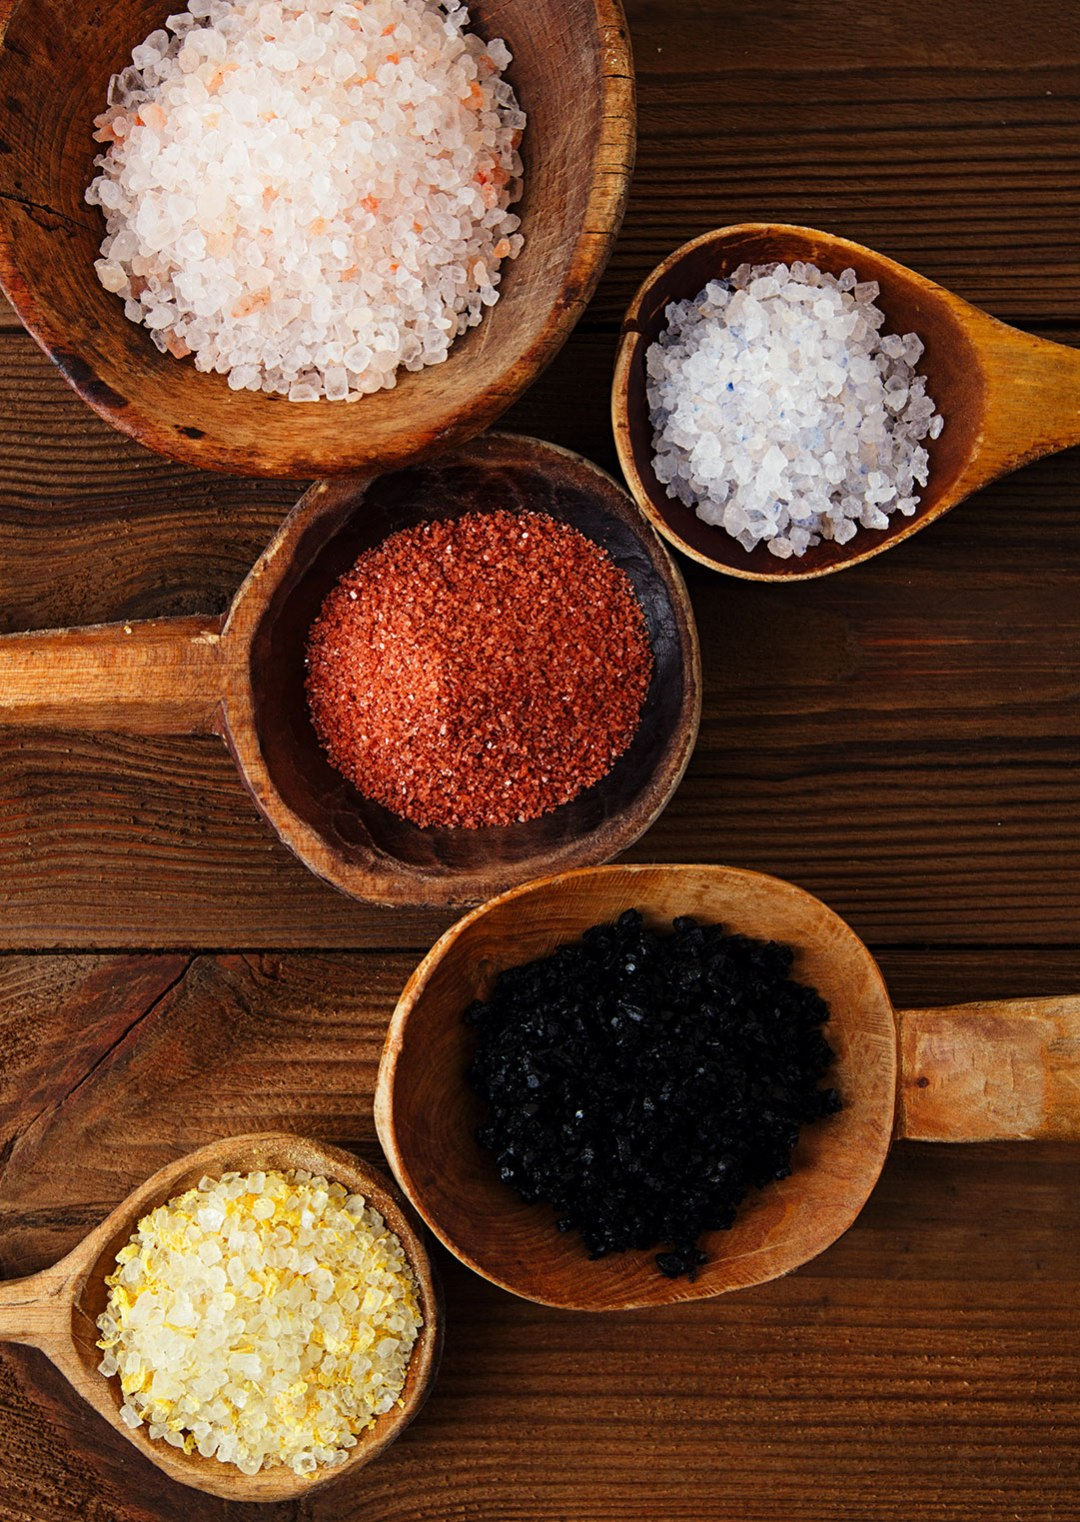 The Different Types Of Salt + The Problems With Table Salt | Salt isn't just a requirement to enhance the flavor of a dish. It contains up to 60 important minerals that are crucial for human health. Learn about the different types of healthy, mineral-rich salts and how they compare with iodized table salt, plus the problems with table salt. | WildernessFamilyNaturals.com